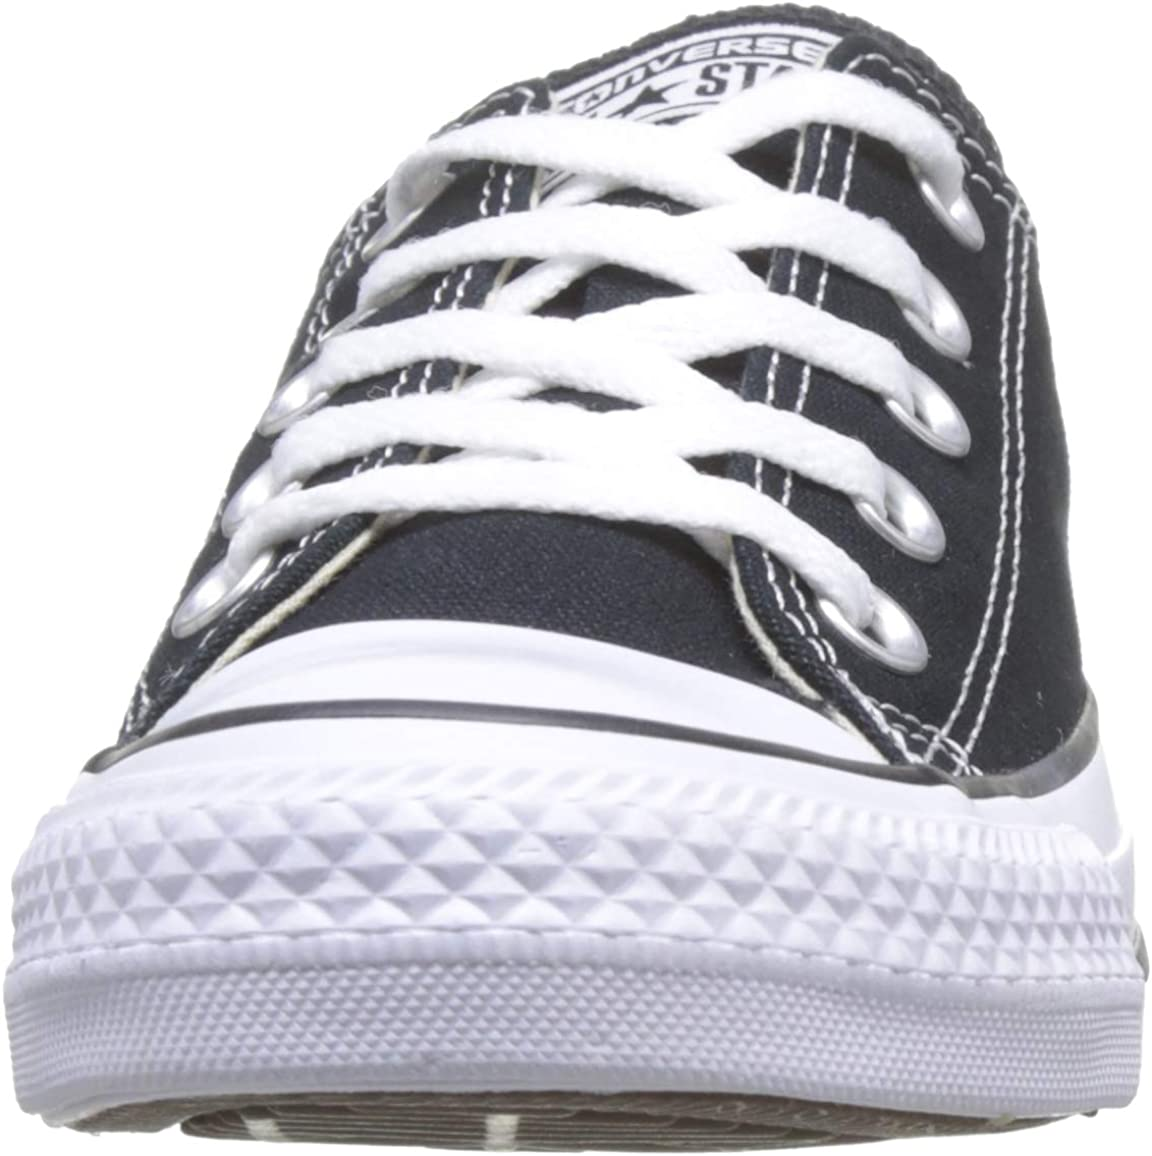 Converse Unisex Chuck Taylor All Star Ox Low Top Classic Black Sneakers M 4 D